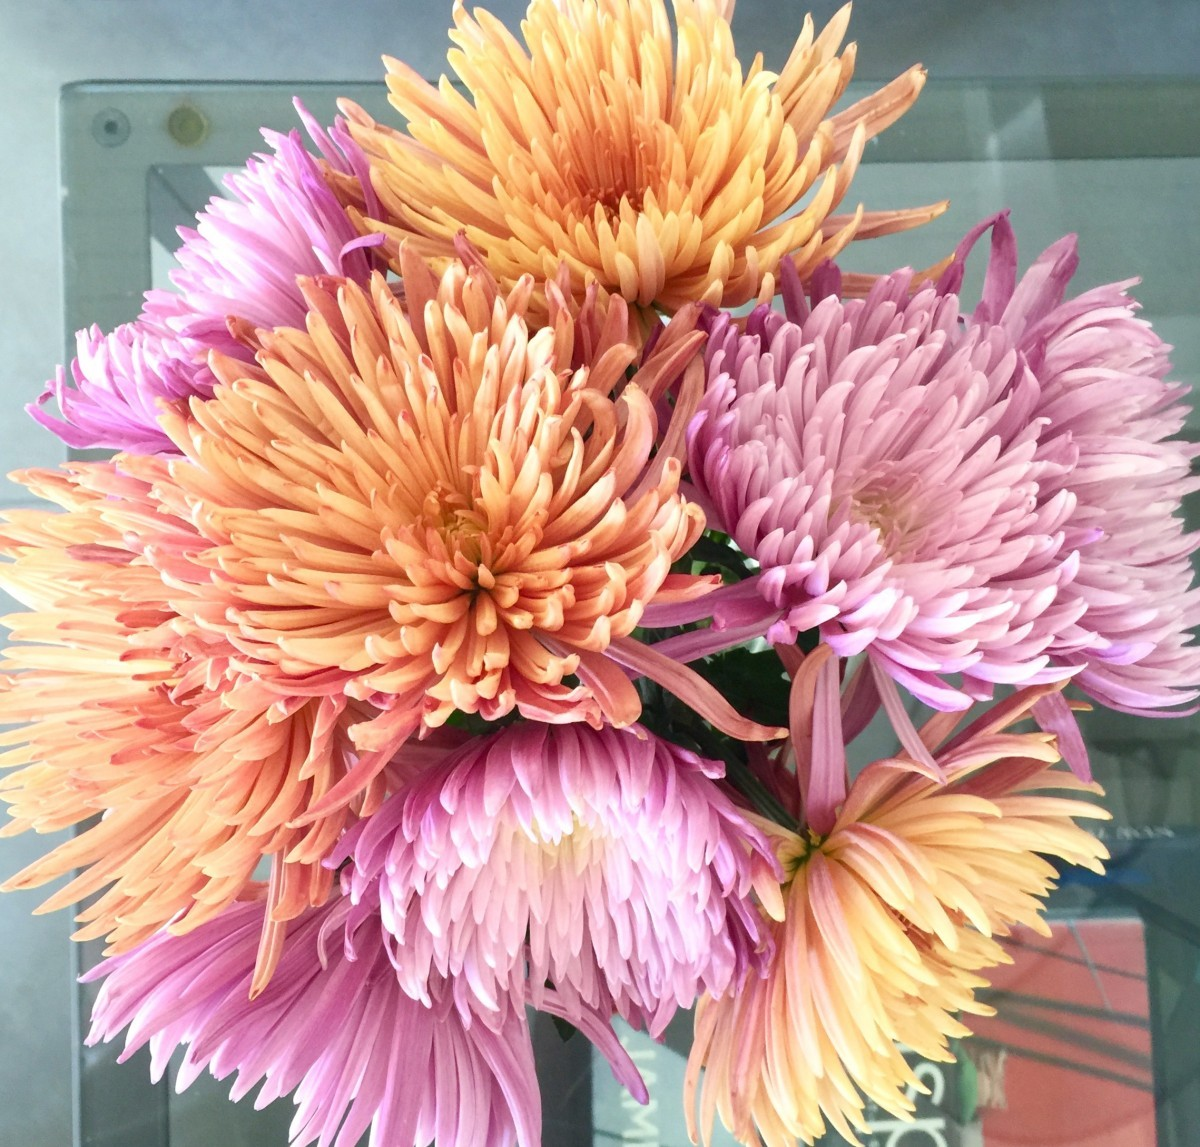 Fall flowers at my place trace style create live chrysanthemums are an inexpensive flower to use when bringing fall colors into the house ive combined pink spider mightylinksfo